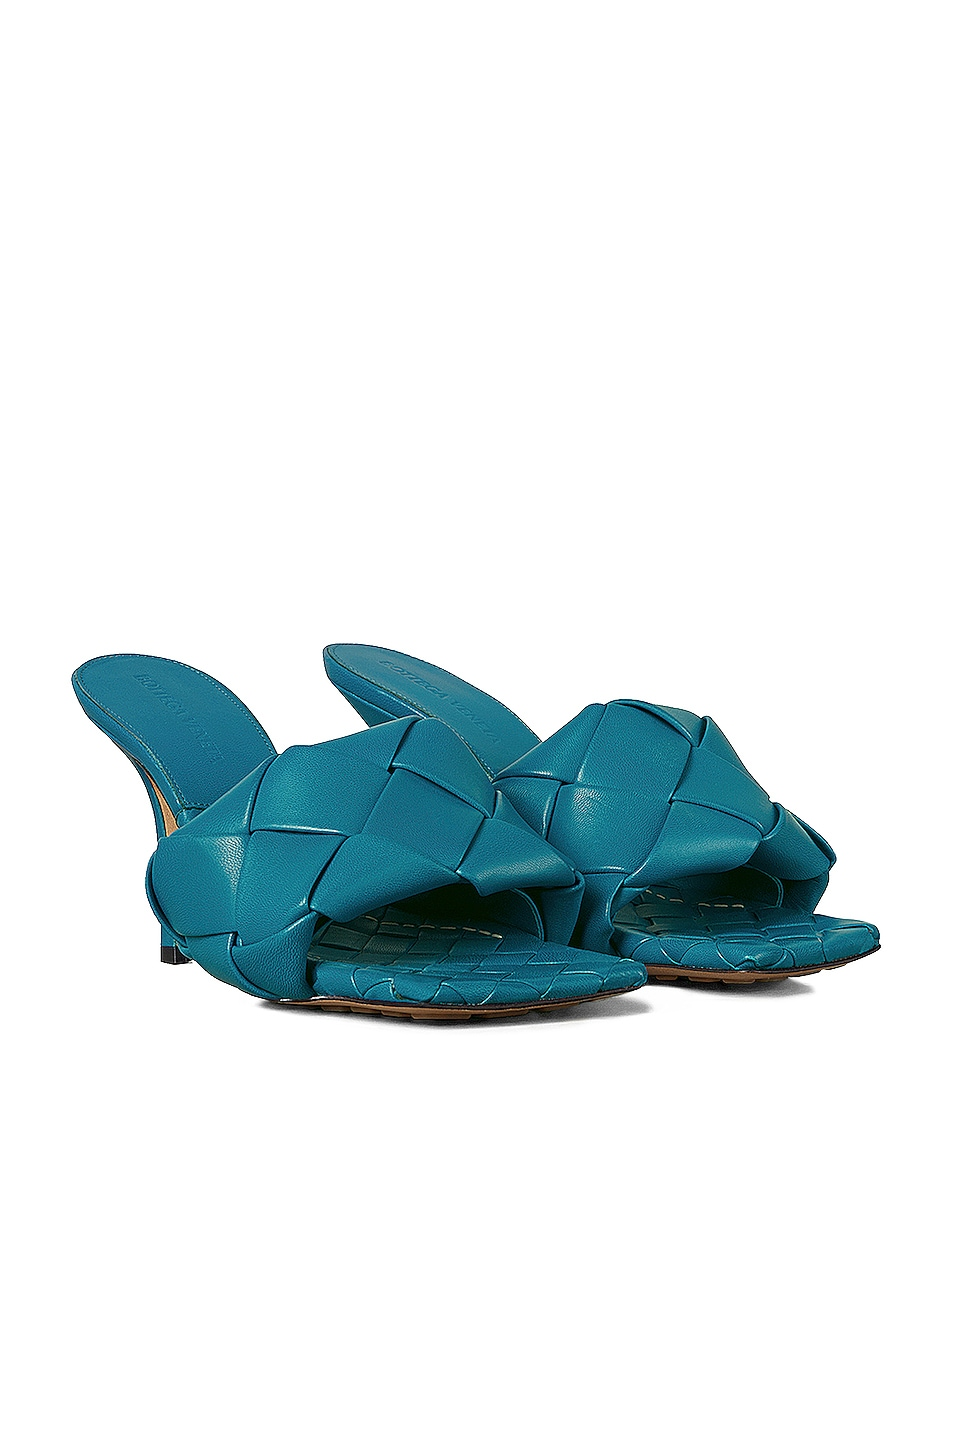 Image 2 of Bottega Veneta Lido Leather Woven Sandals in Vintage Blue